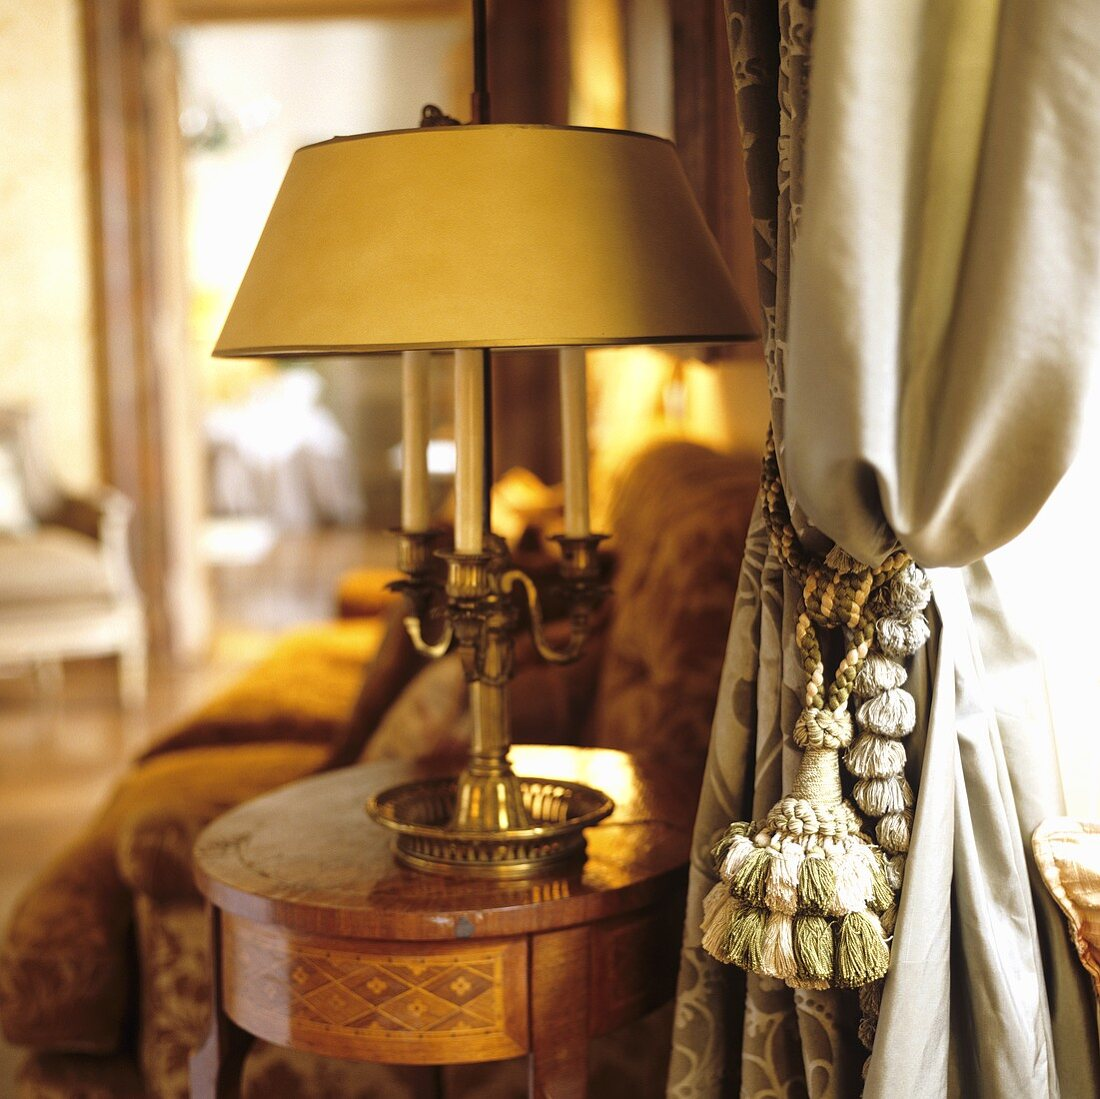 An antique table lamp on a Baroque table and a curtain with a cord tie